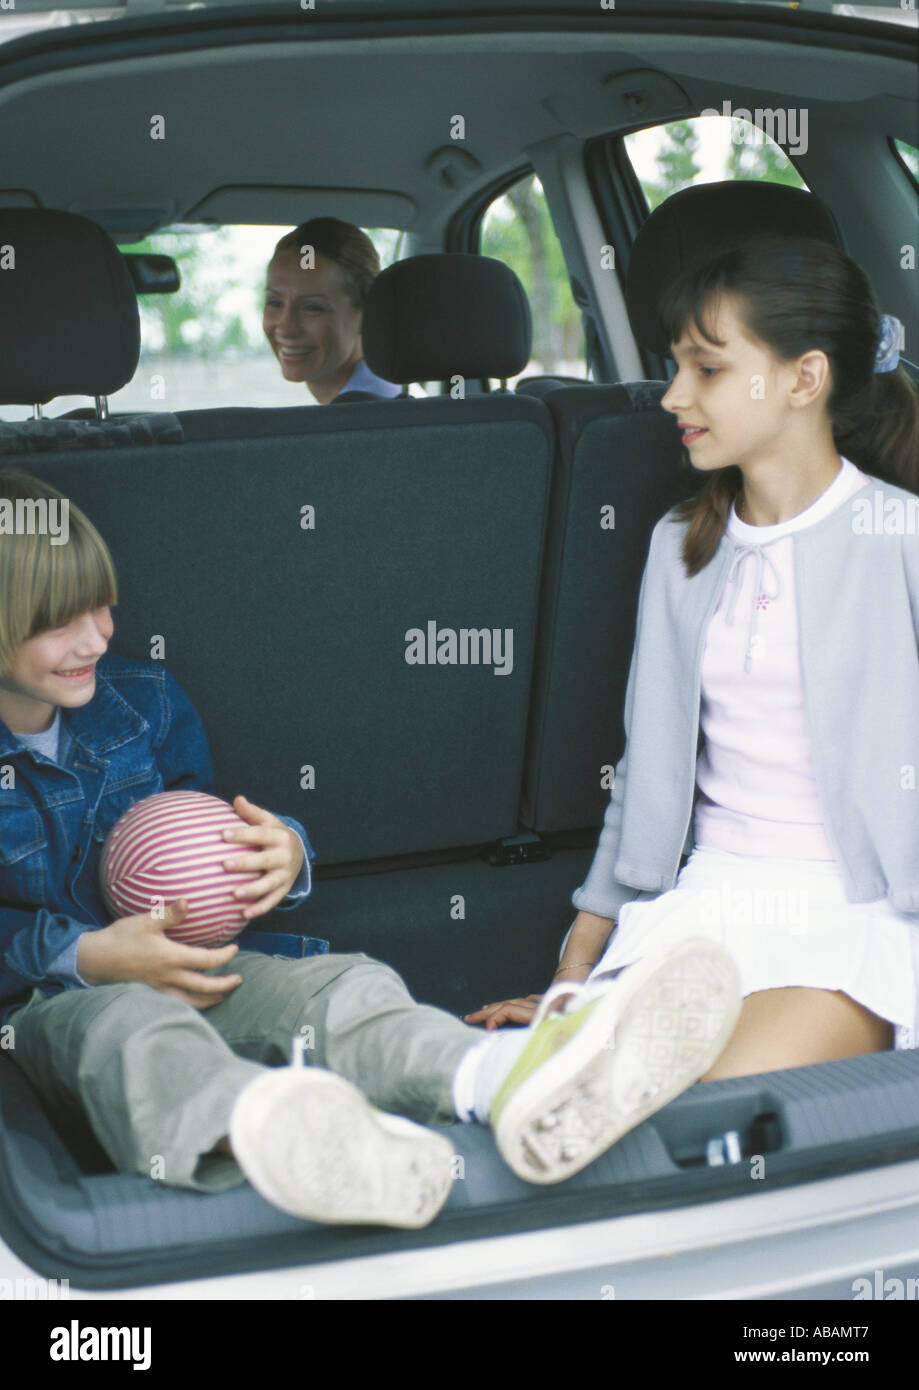 Children sitting in car trunk - Stock Image